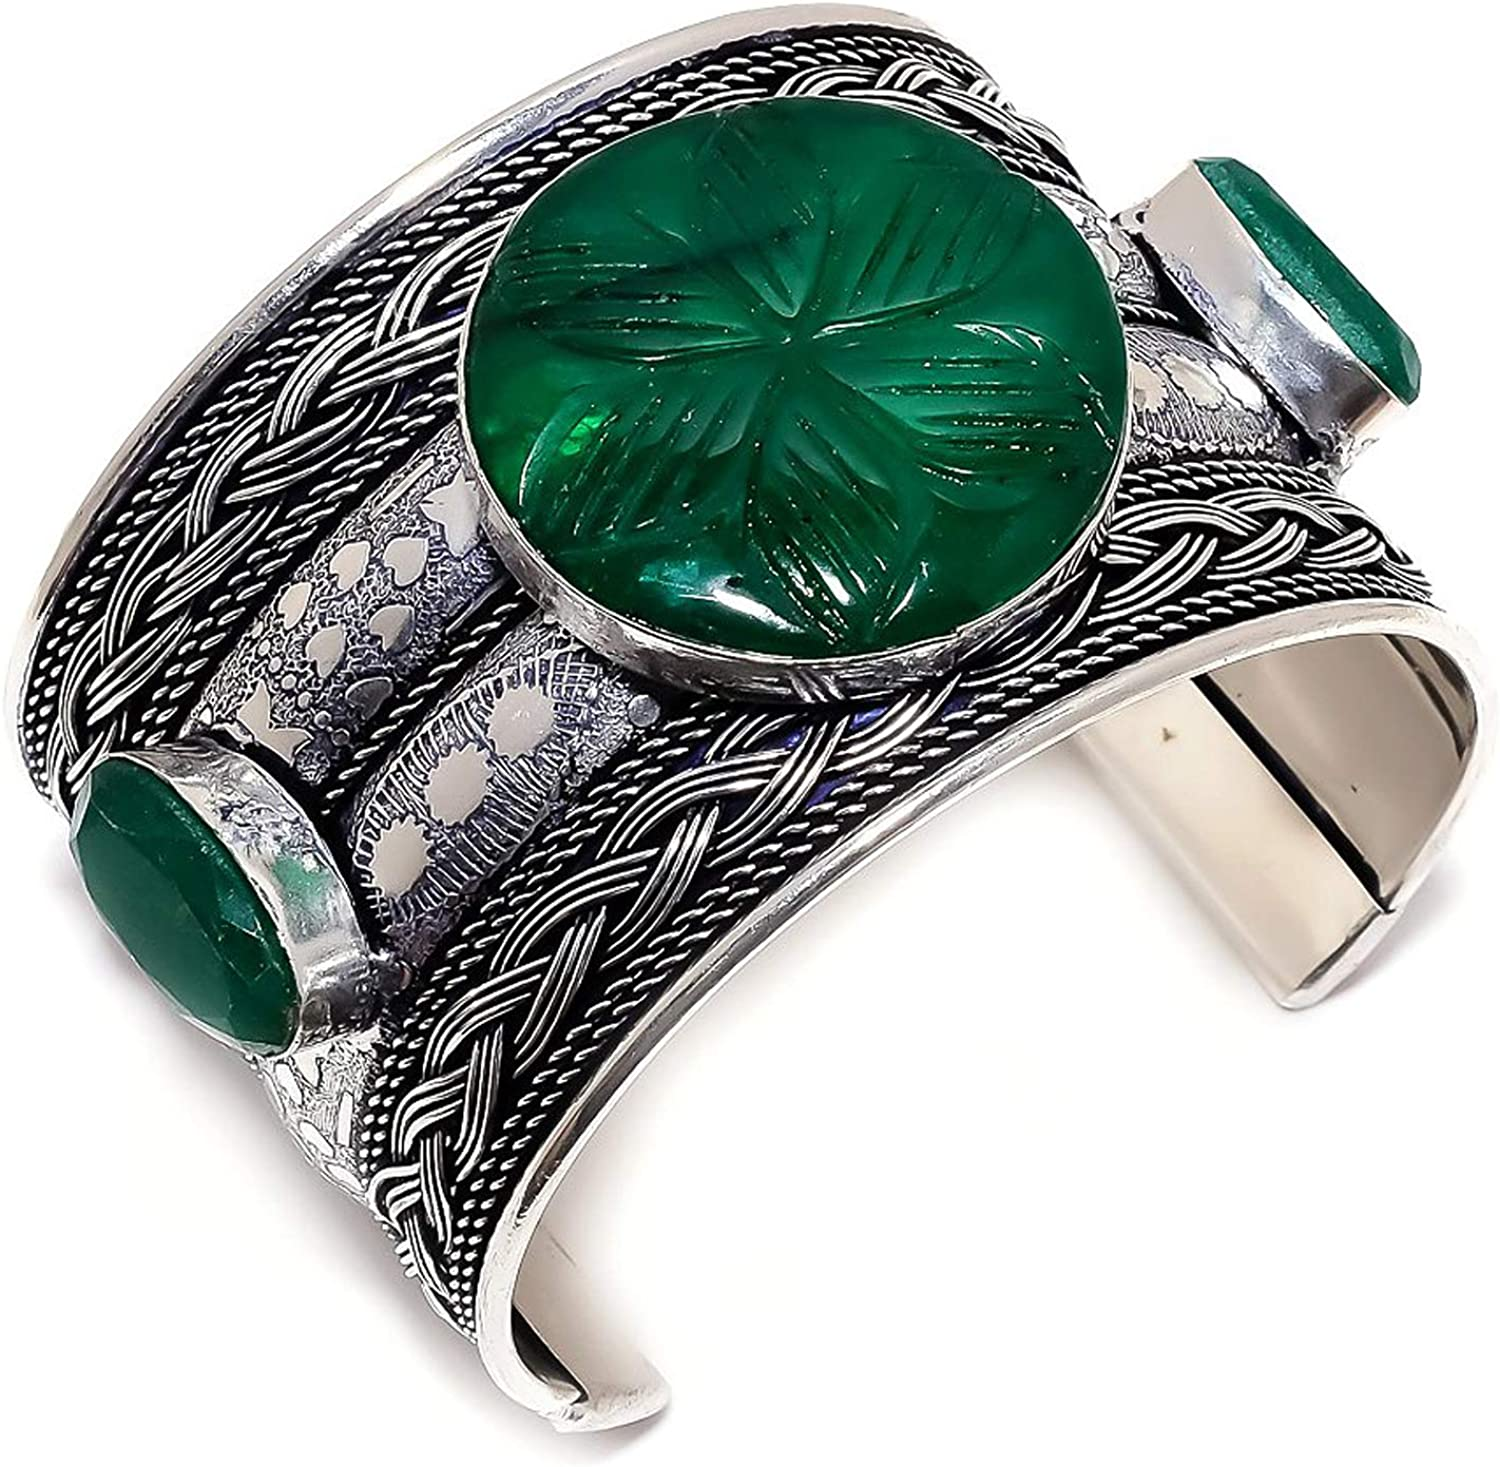 Opalgemstore Max 48% OFF Carved Zambian Mines Popular brand in the world Emerald Cu Silver Sterling 925